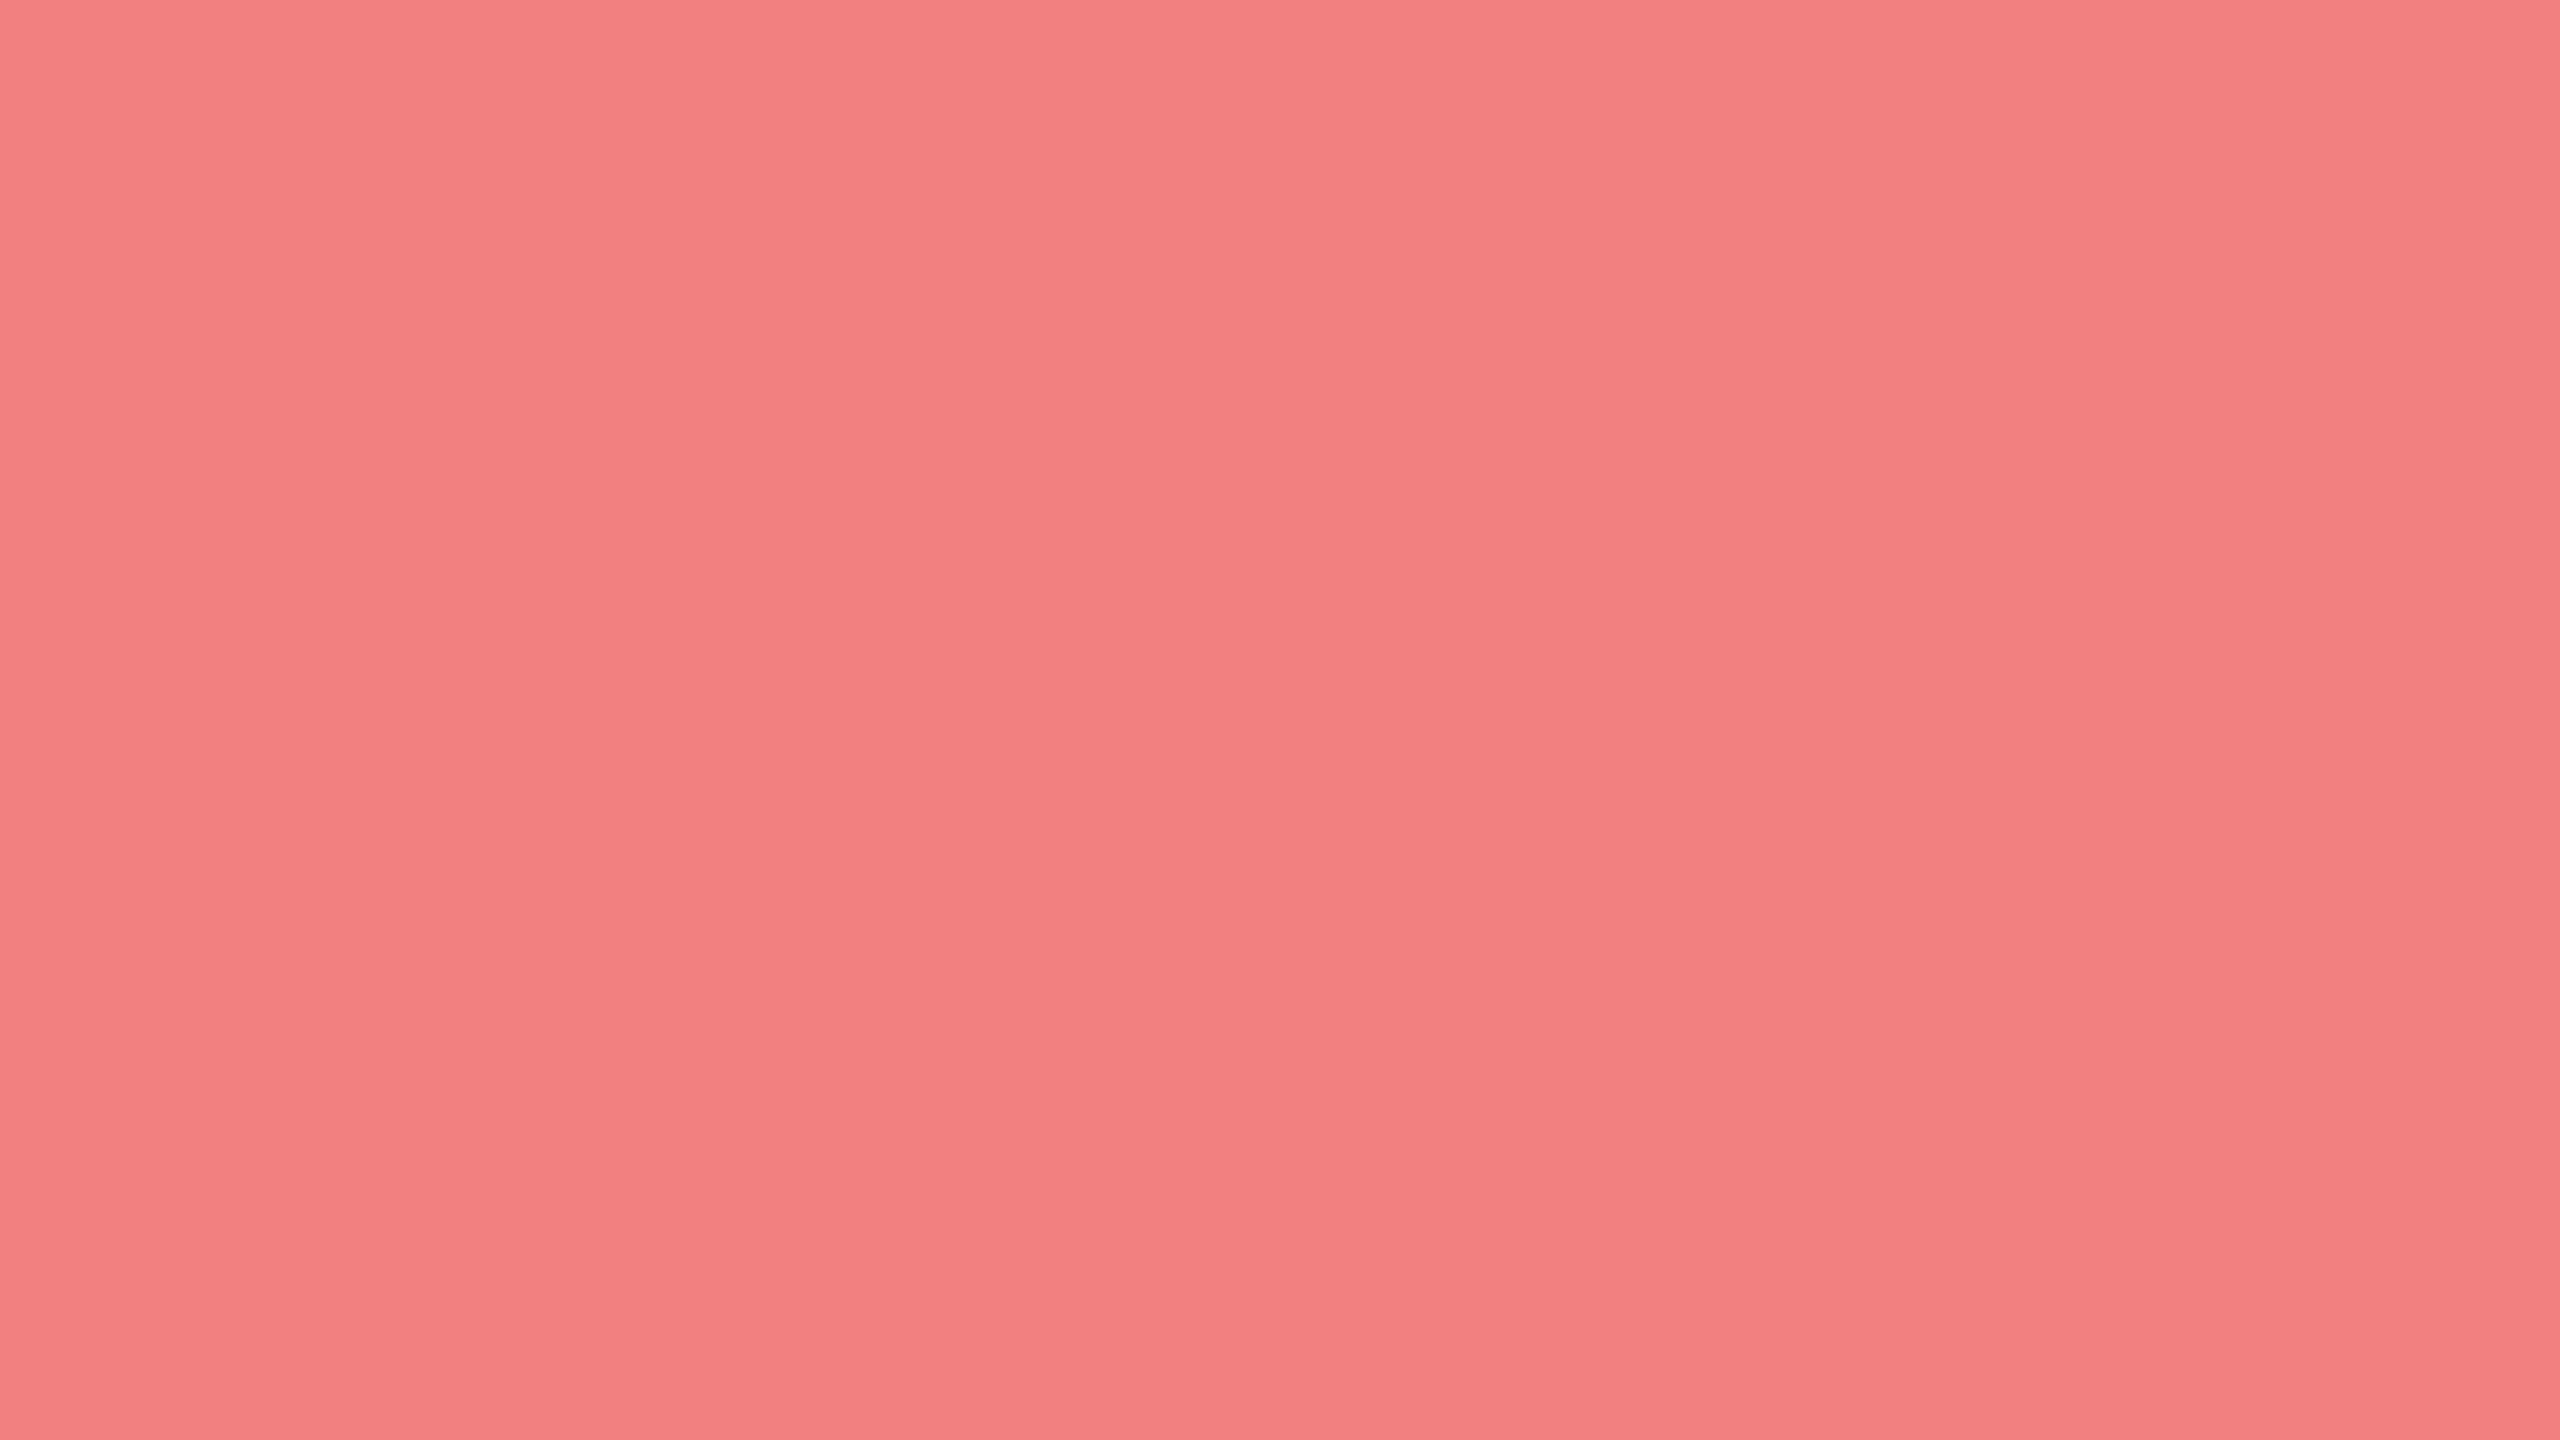 2560x1440 Light Coral Solid Color Background